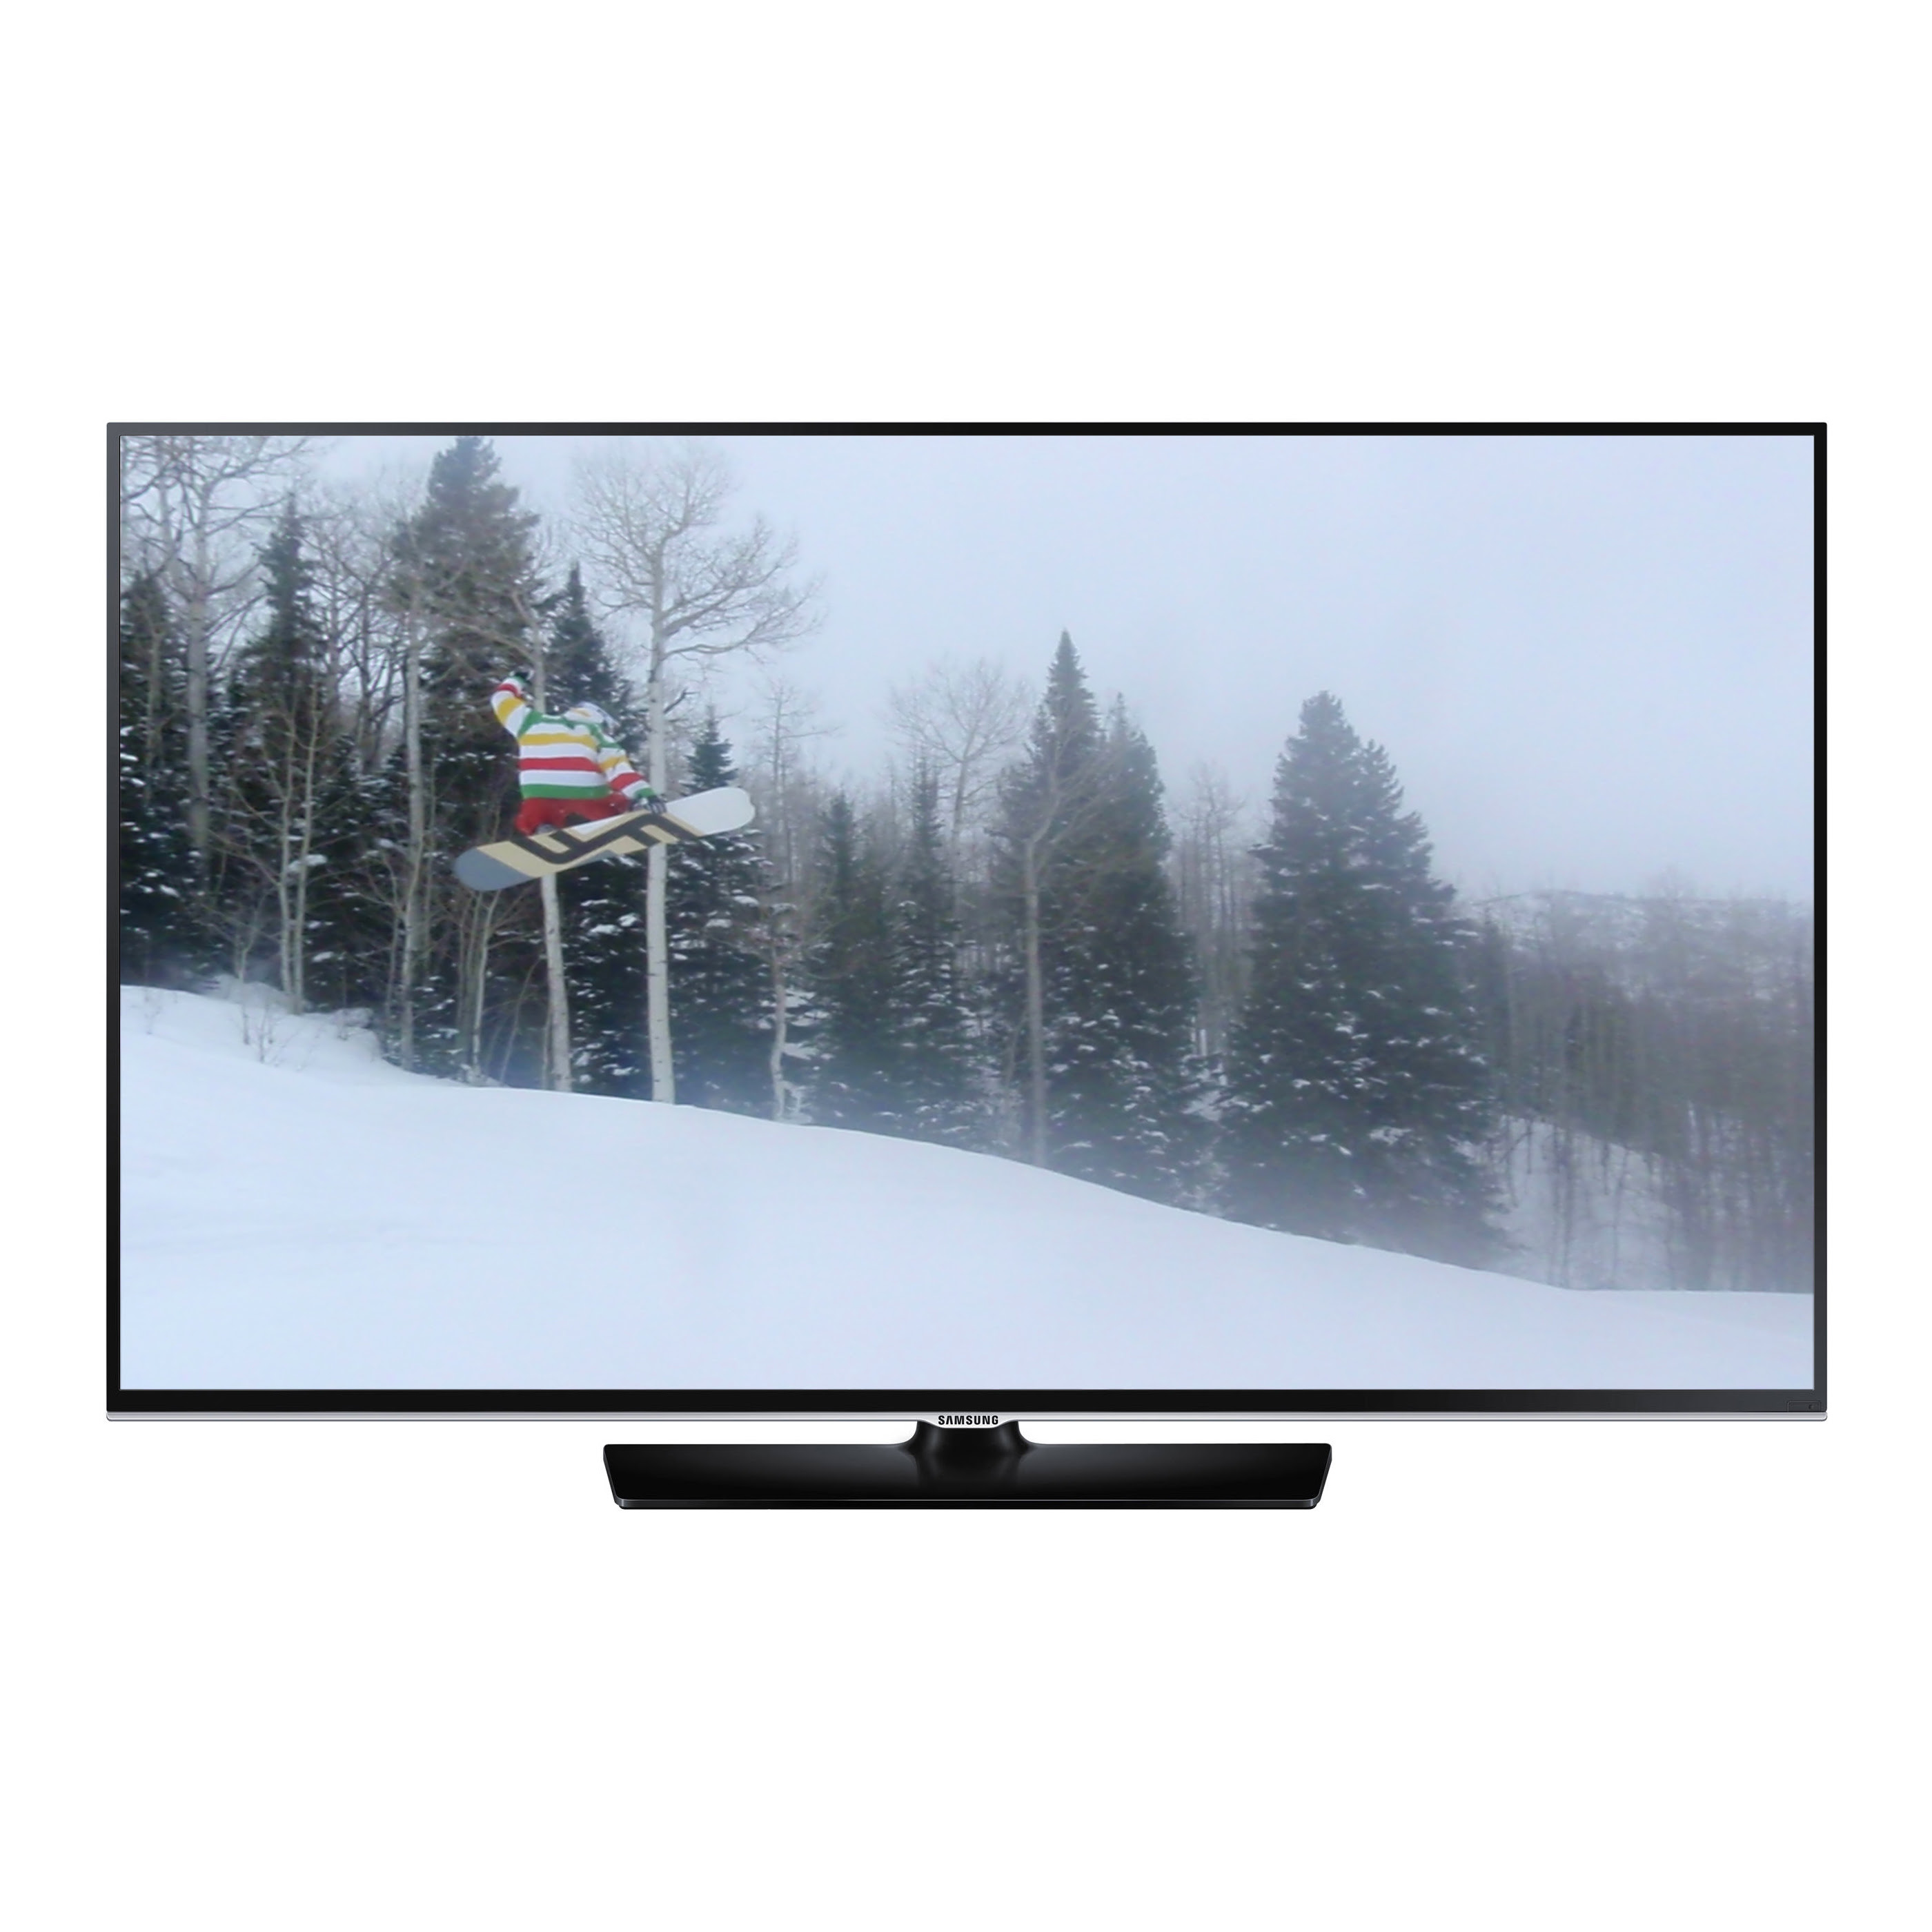 Samsung Refurbished 48 Class 1080p LED Smart Hdtv - UN40H5500